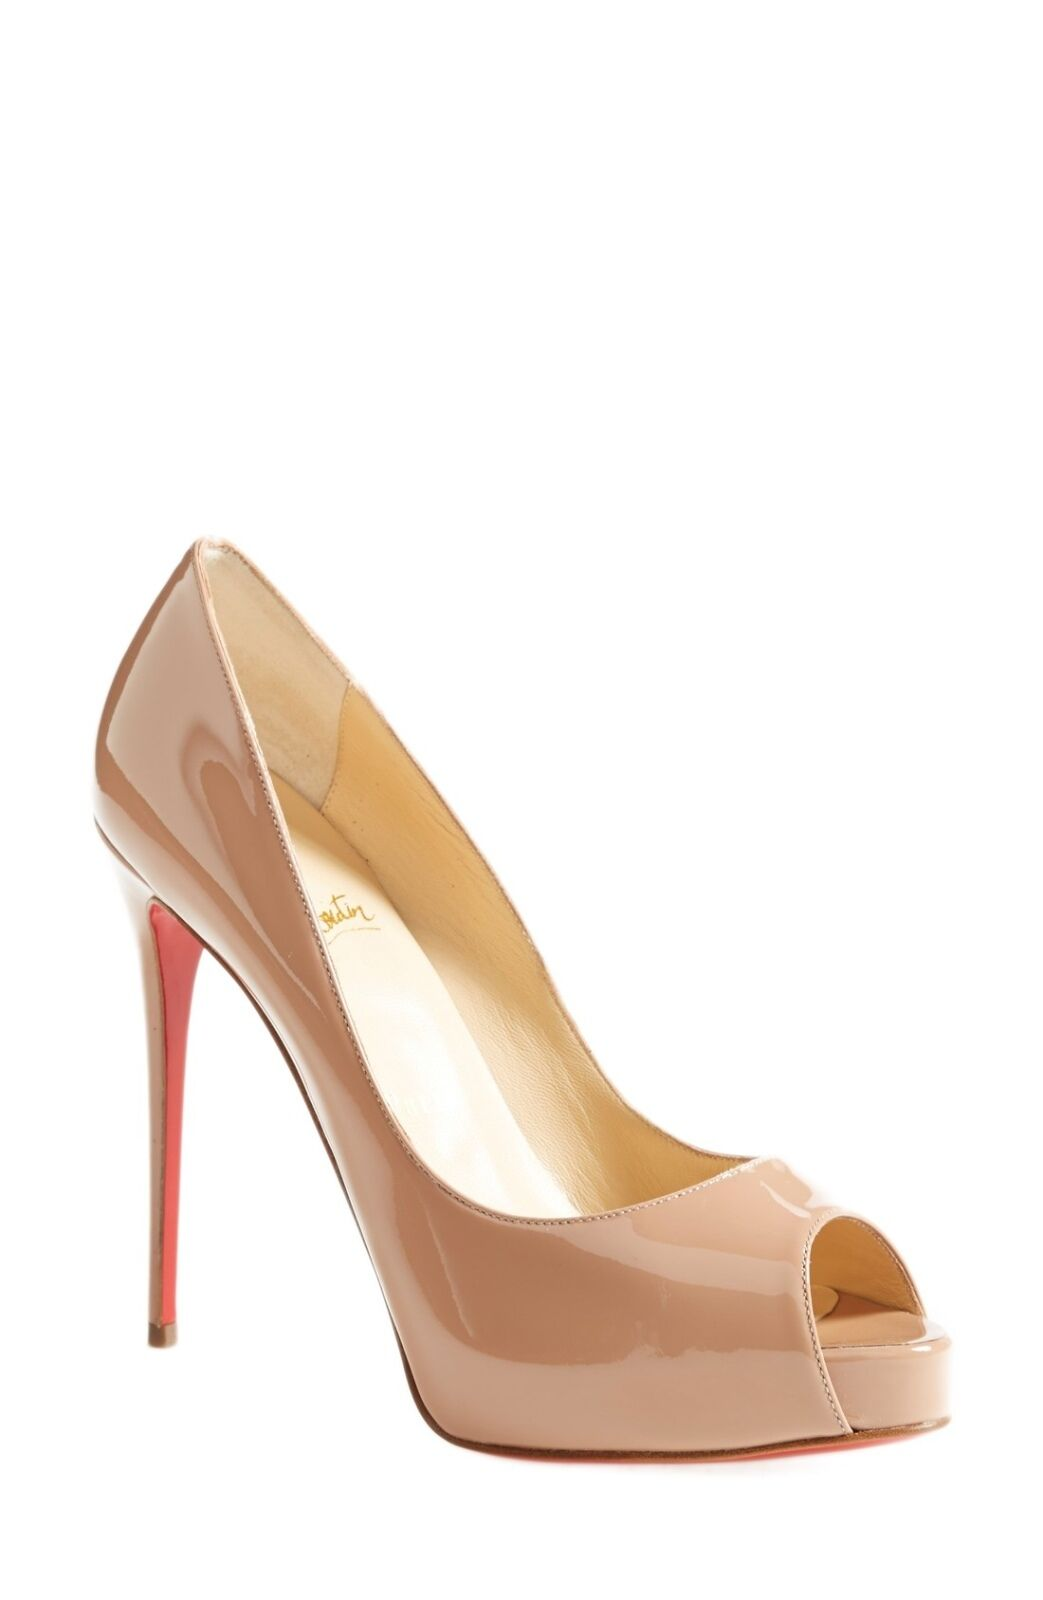 Christian Louboutin Prive Open Open Open Toe Pump Bude Patent Leather 39 Size 8.5 4ec0a1